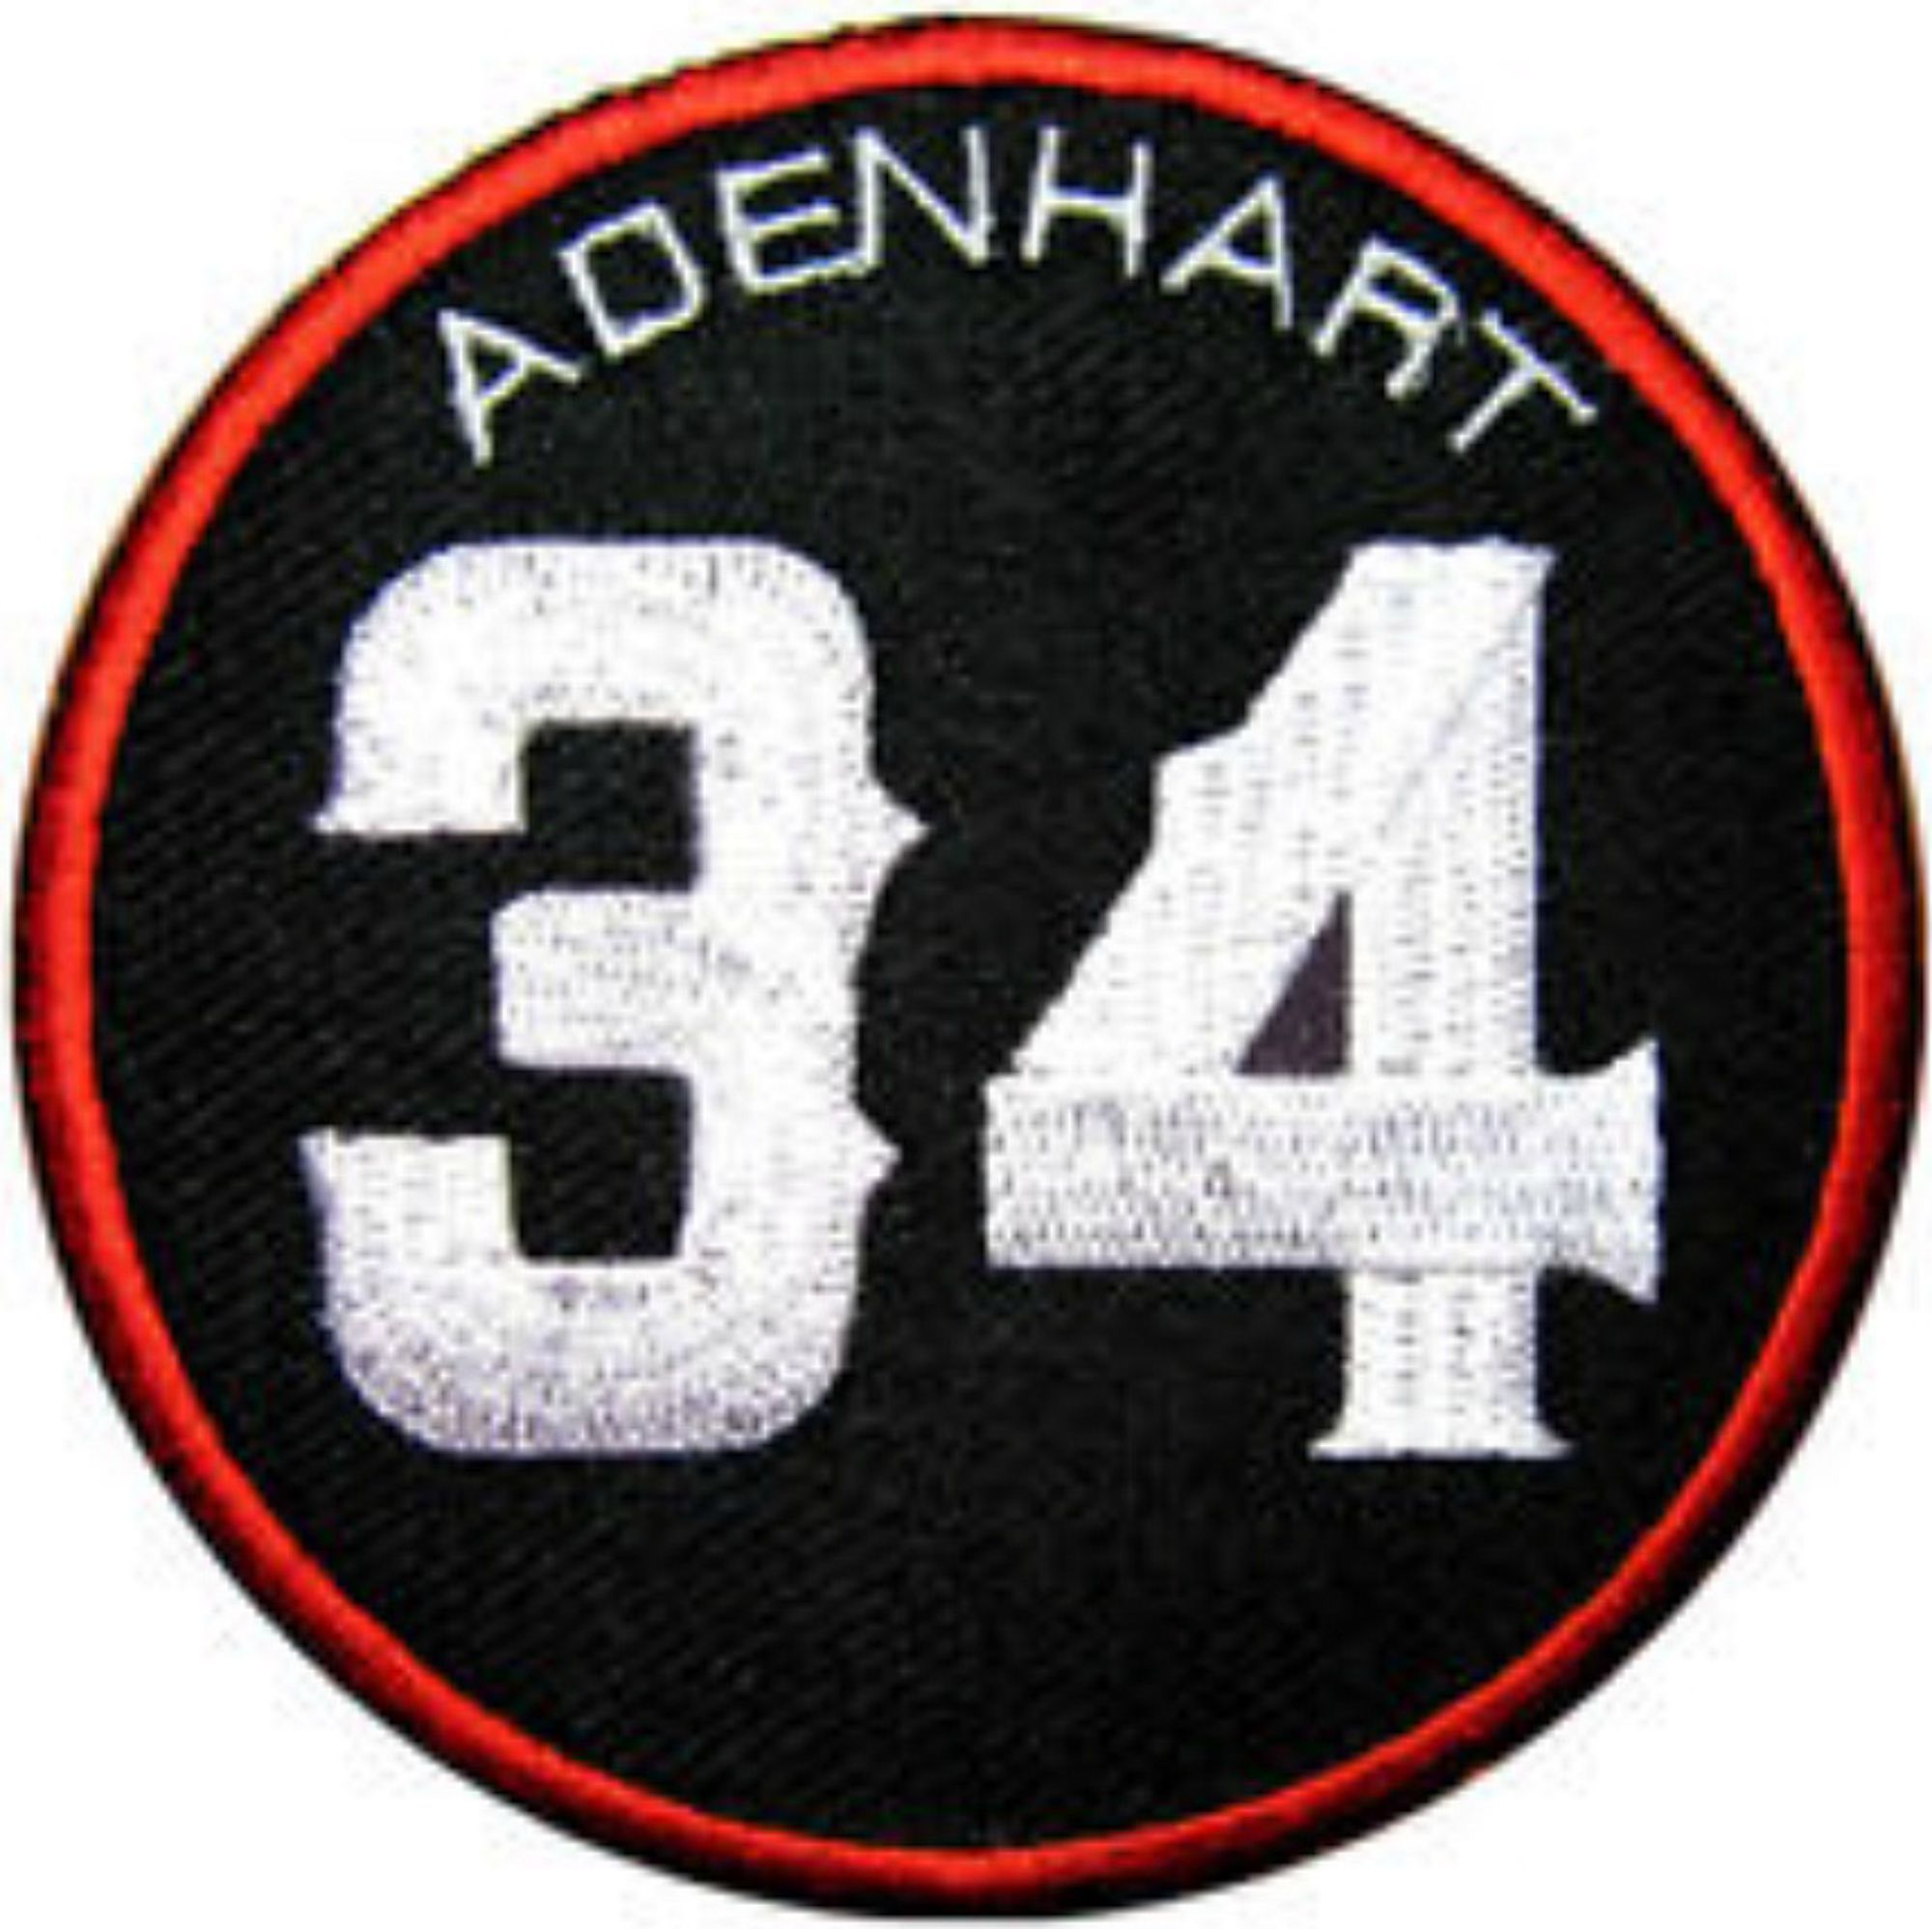 finest selection 8d548 089b8 Nick Adenhart Memorial Patch   Jersey Patches   Anaheim los ...